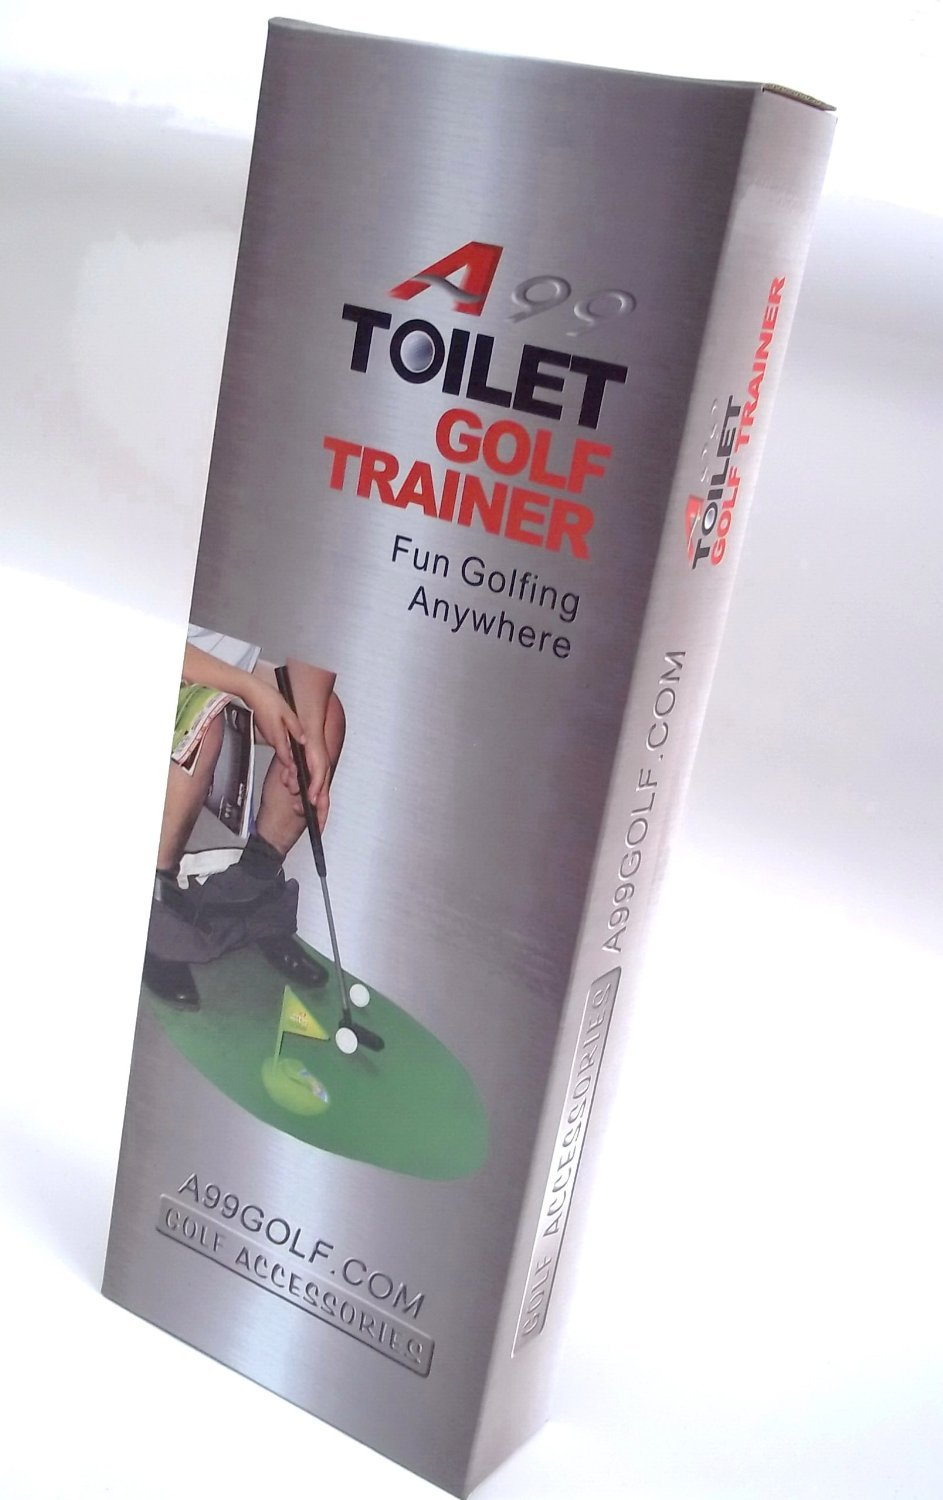 2sets of A99 Golf Toilet Bathroom Mini Golf Mat Set Game Potty Putter by A99 Golf (Image #5)